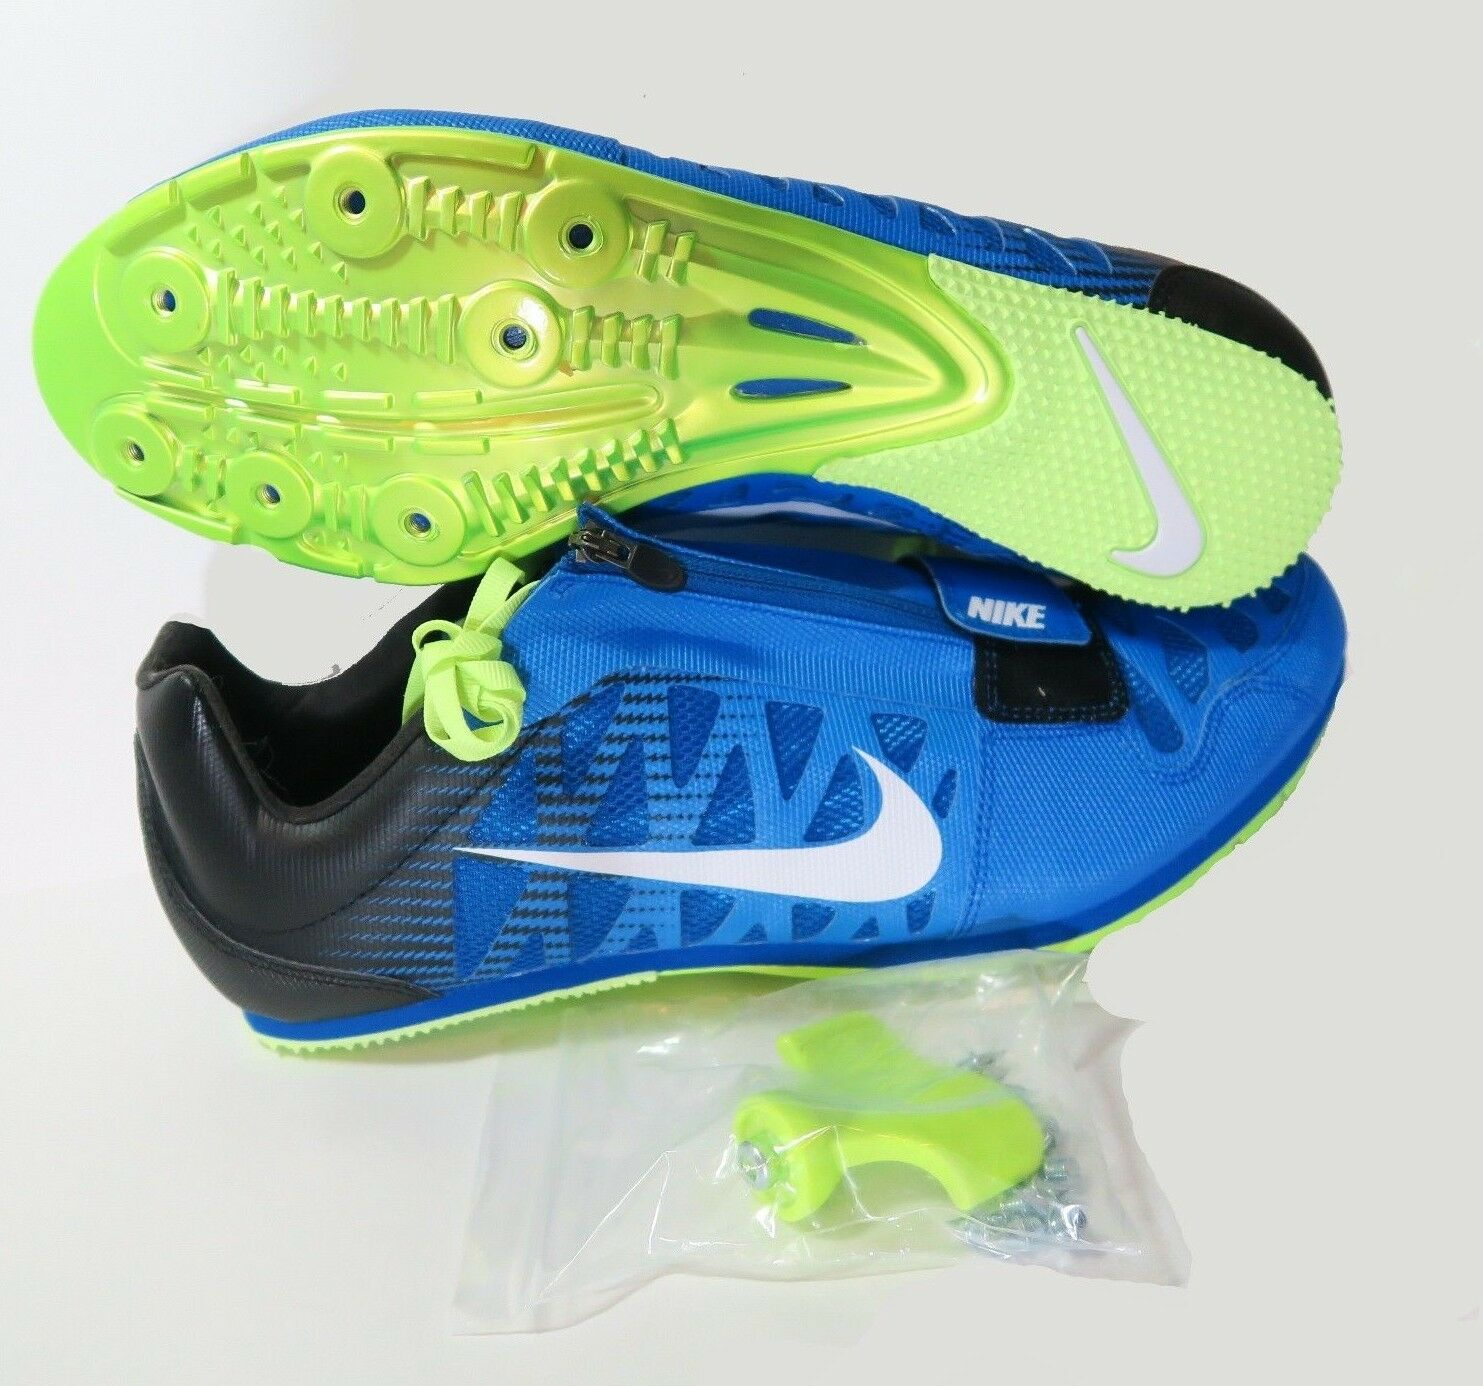 new style 4d0f1 342bd New Mens Nike Zoom LJ 4 Long Jump IV Spikes Spikes Spikes Shoes 12.5 Blue  White 415339-413 e34954